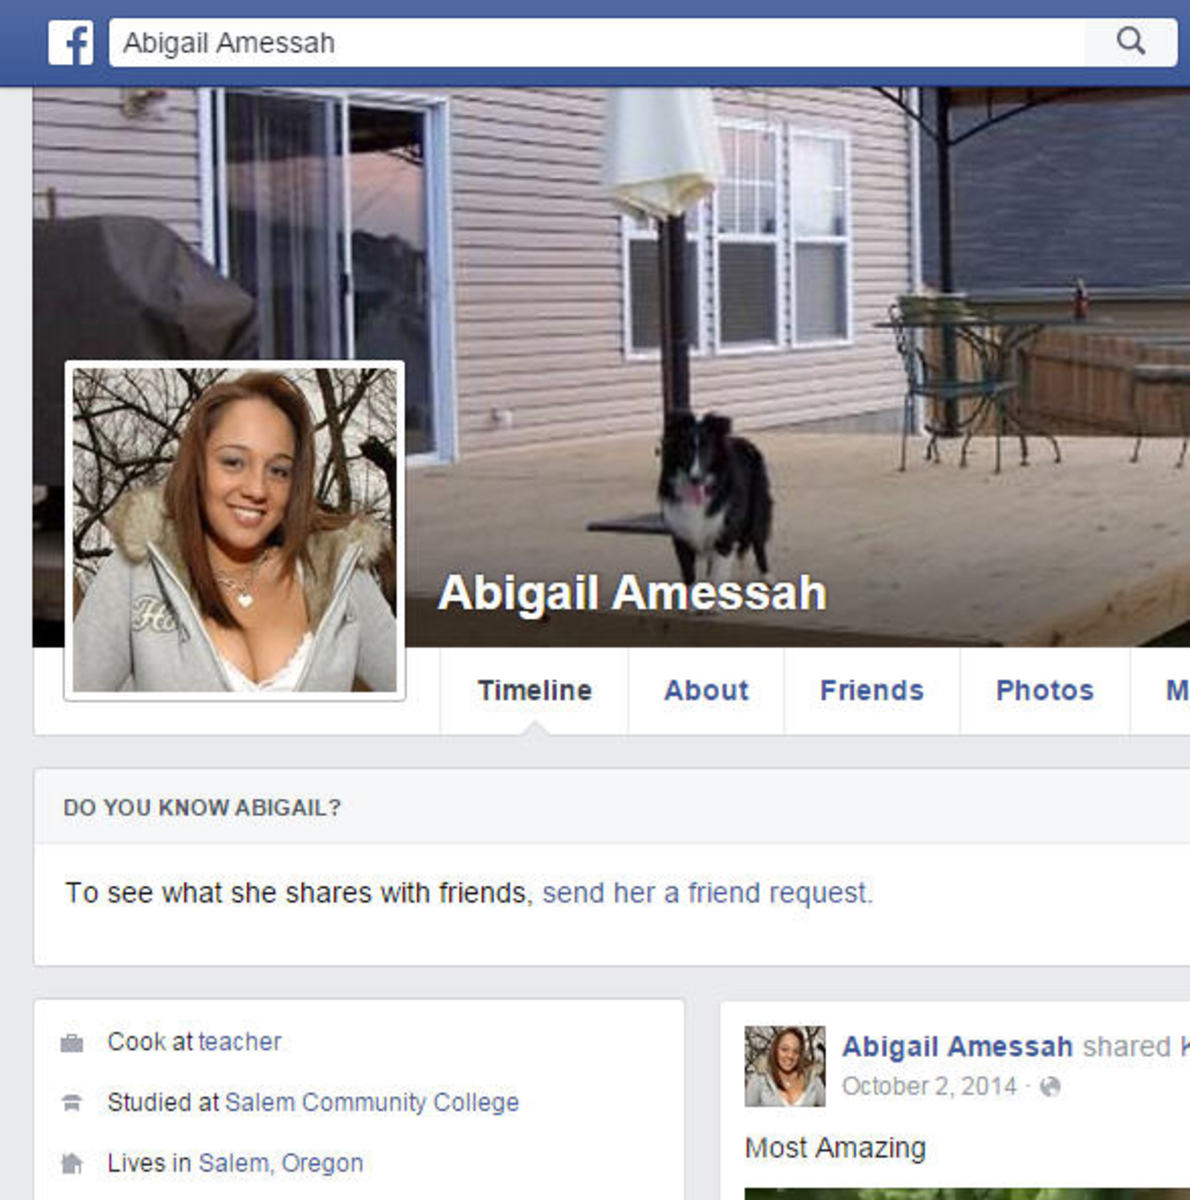 Another fake profile on Facebook